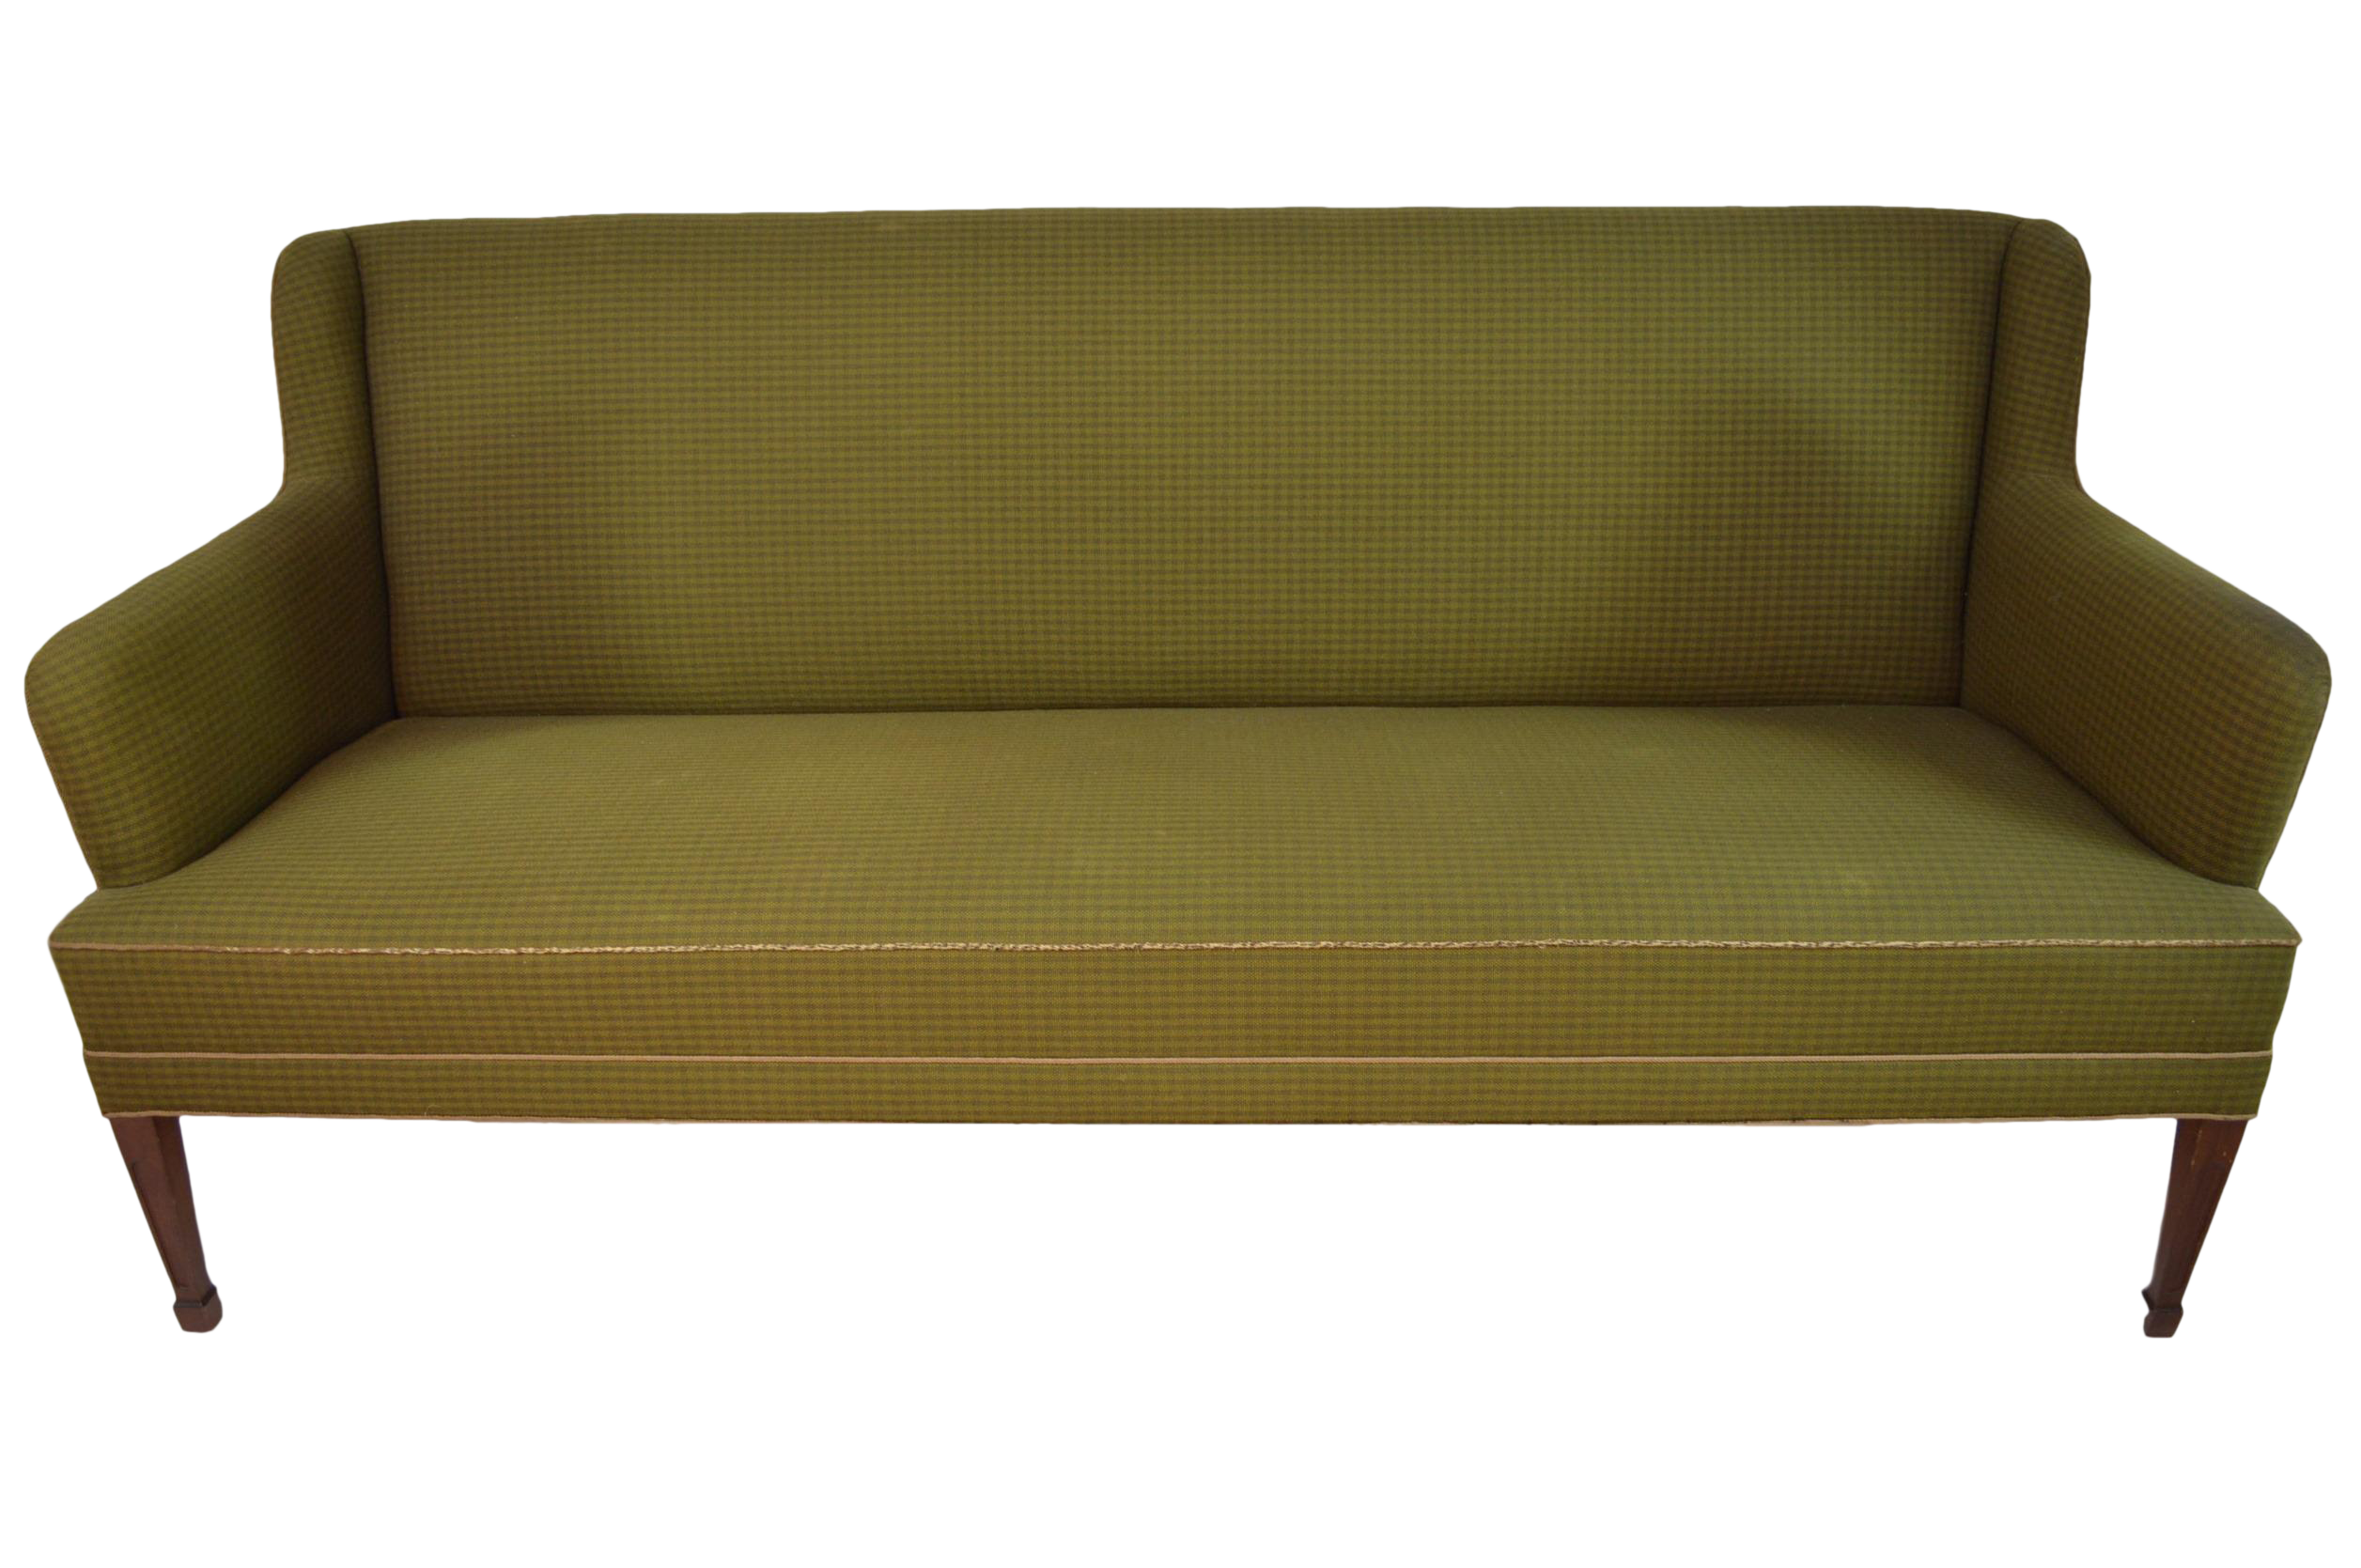 Danish Frits Henningsen Sofa | Sofas | Sofa, Sofa furniture ...